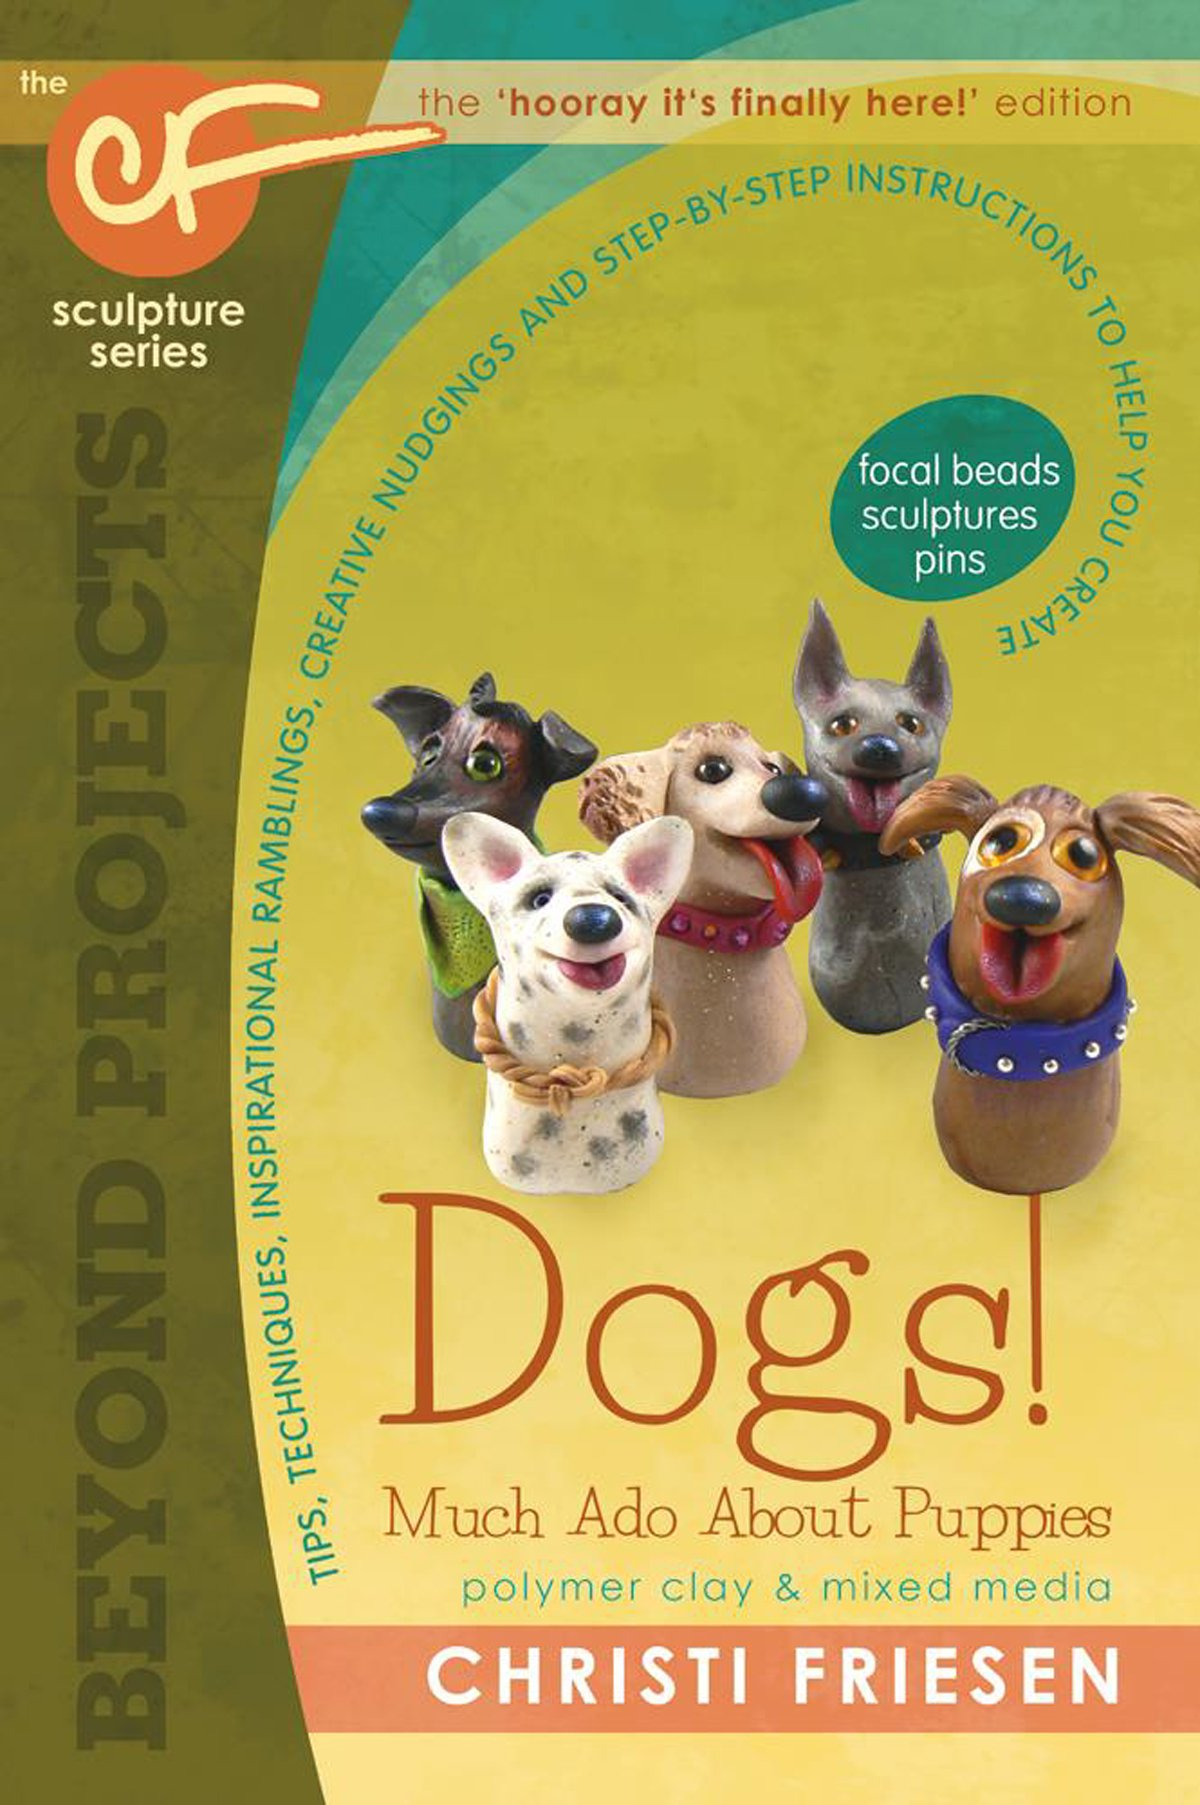 Download Dogs! Much Ado About Puppies: The CF Sculpture Series Book 8 (Beyond Projects) PDF